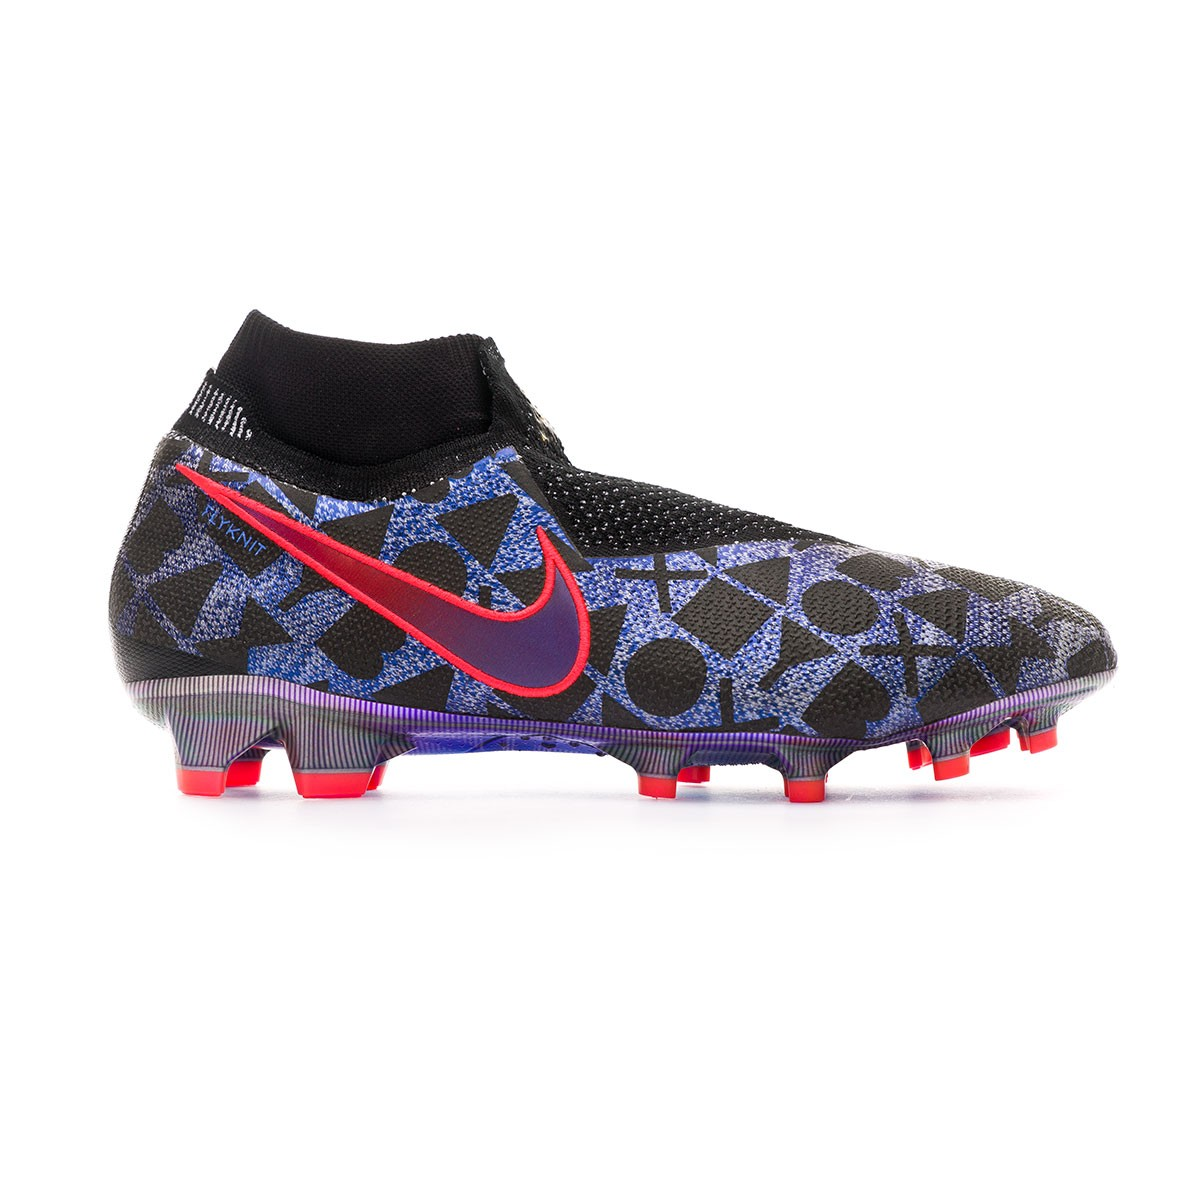 sale retailer bbbe9 47093 Boot Nike Phantom Vision Elite DF FG EA Sports White-Black-Bright crimson -  Soloporteros es ahora Fútbol Emotion